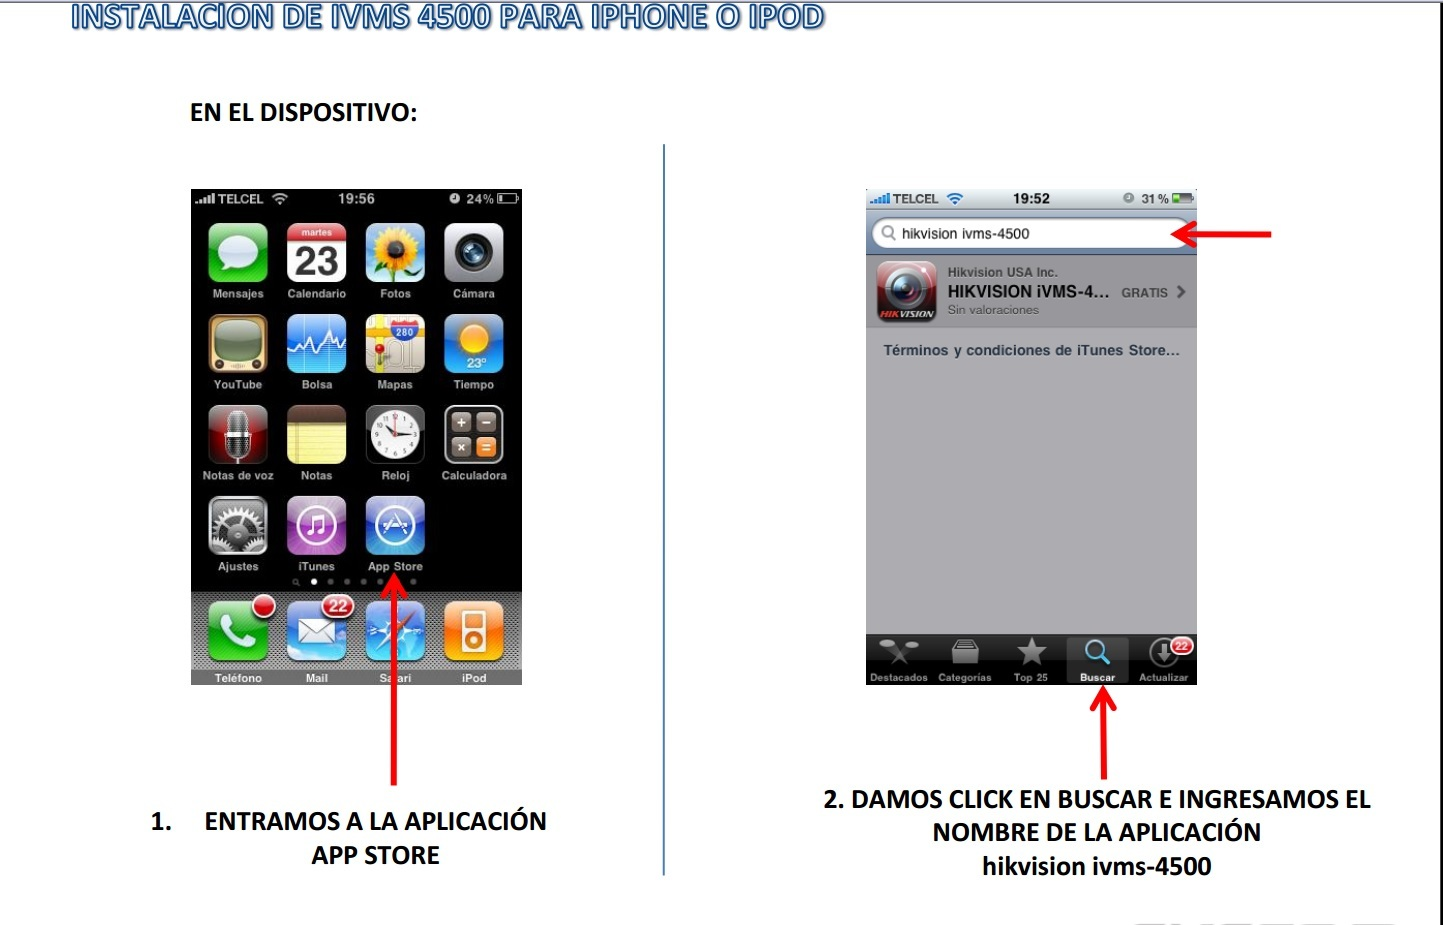 how to import photos from iphone to windows 8 ivms 4500 para iphone ipod y celulares taringa 4500